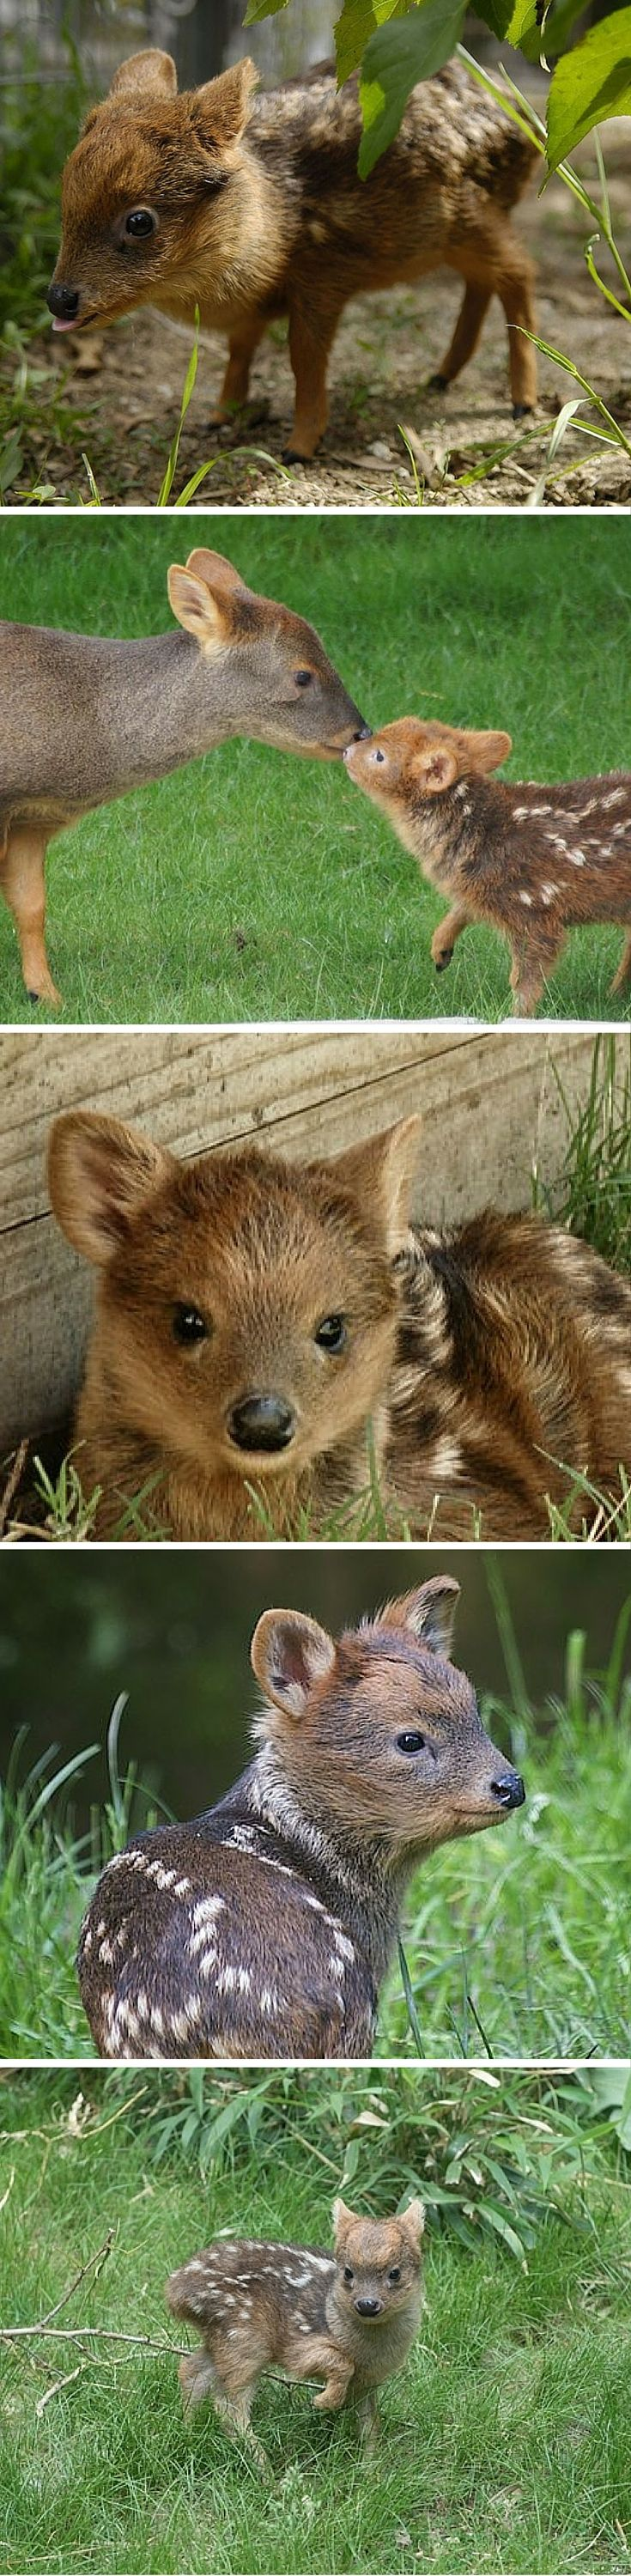 At just 12 to 14 inches high at the shoulder when fully grown, pudus are the world's smallest deer species.  But why stop at five when you can have 10? More pictures of baby pudus at the link. :)